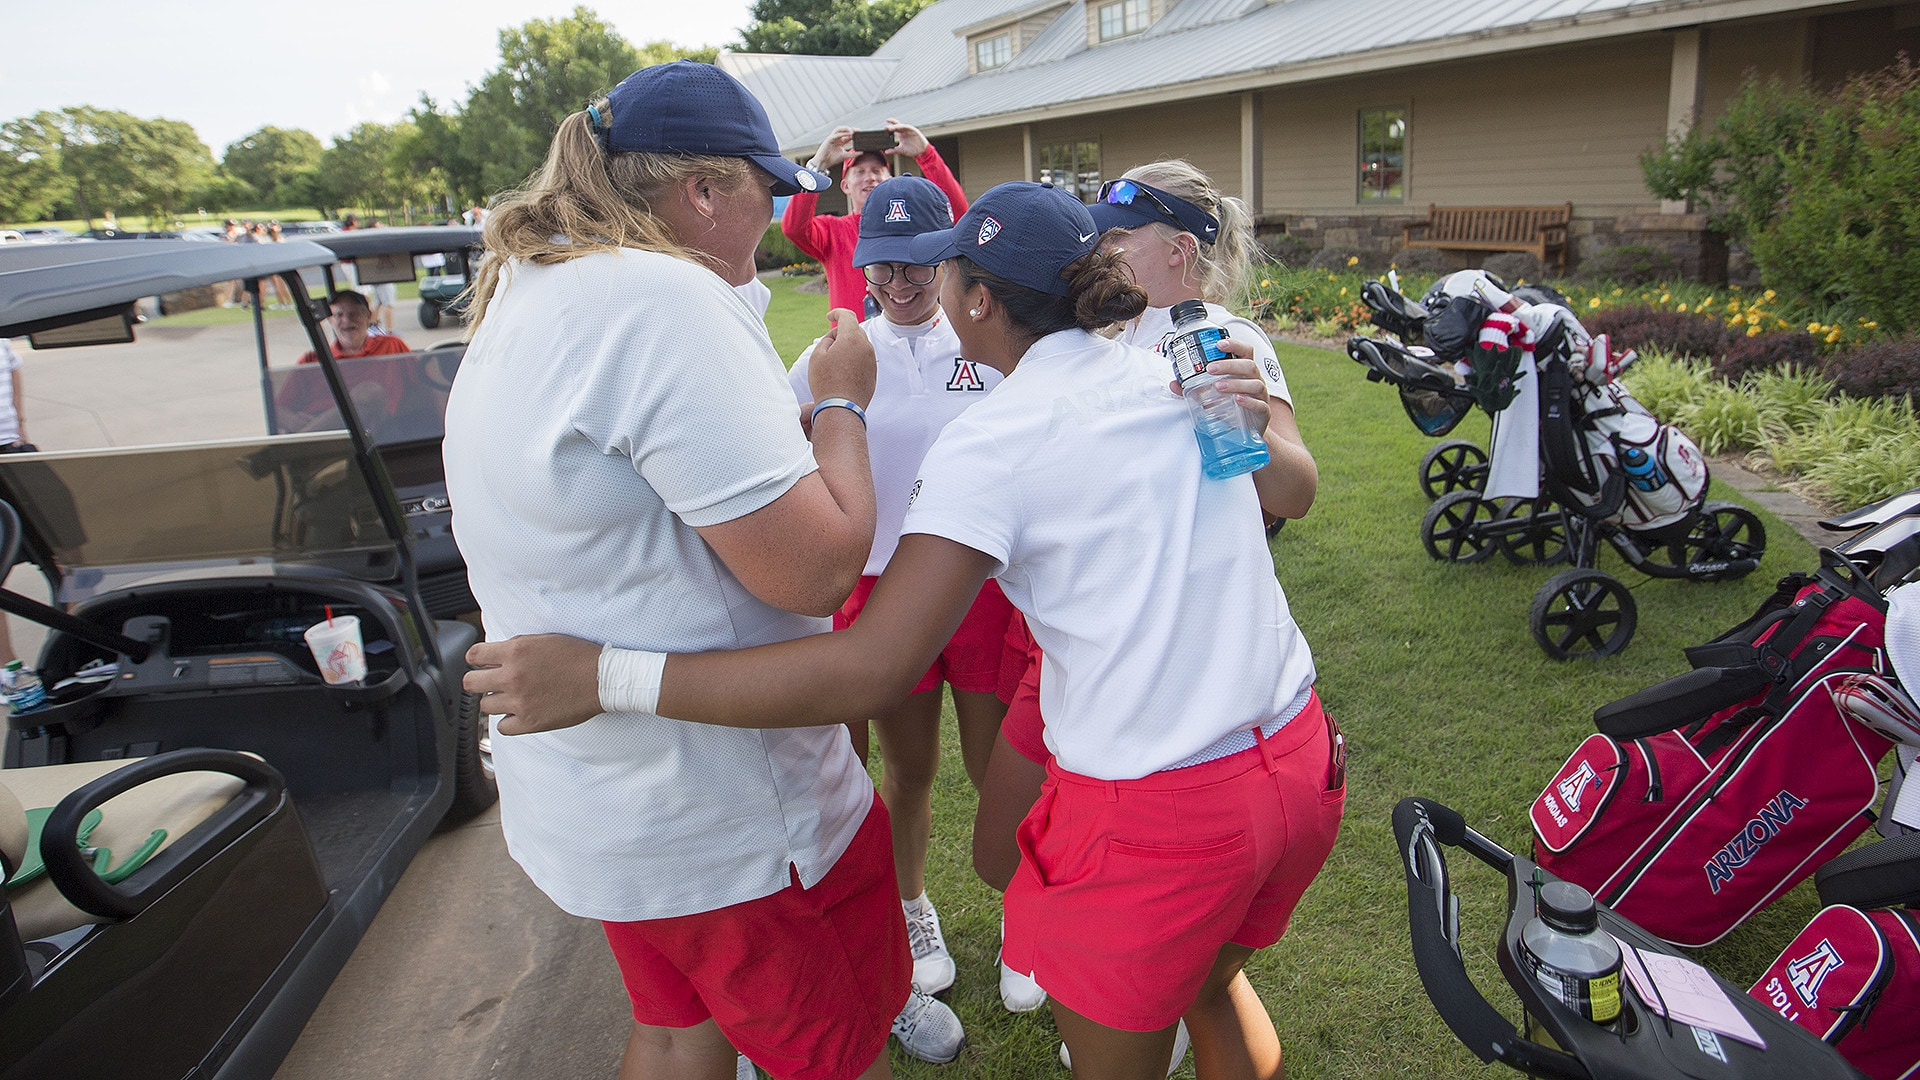 Arizona advances to the 2018 NCAA Women's DI Championship final